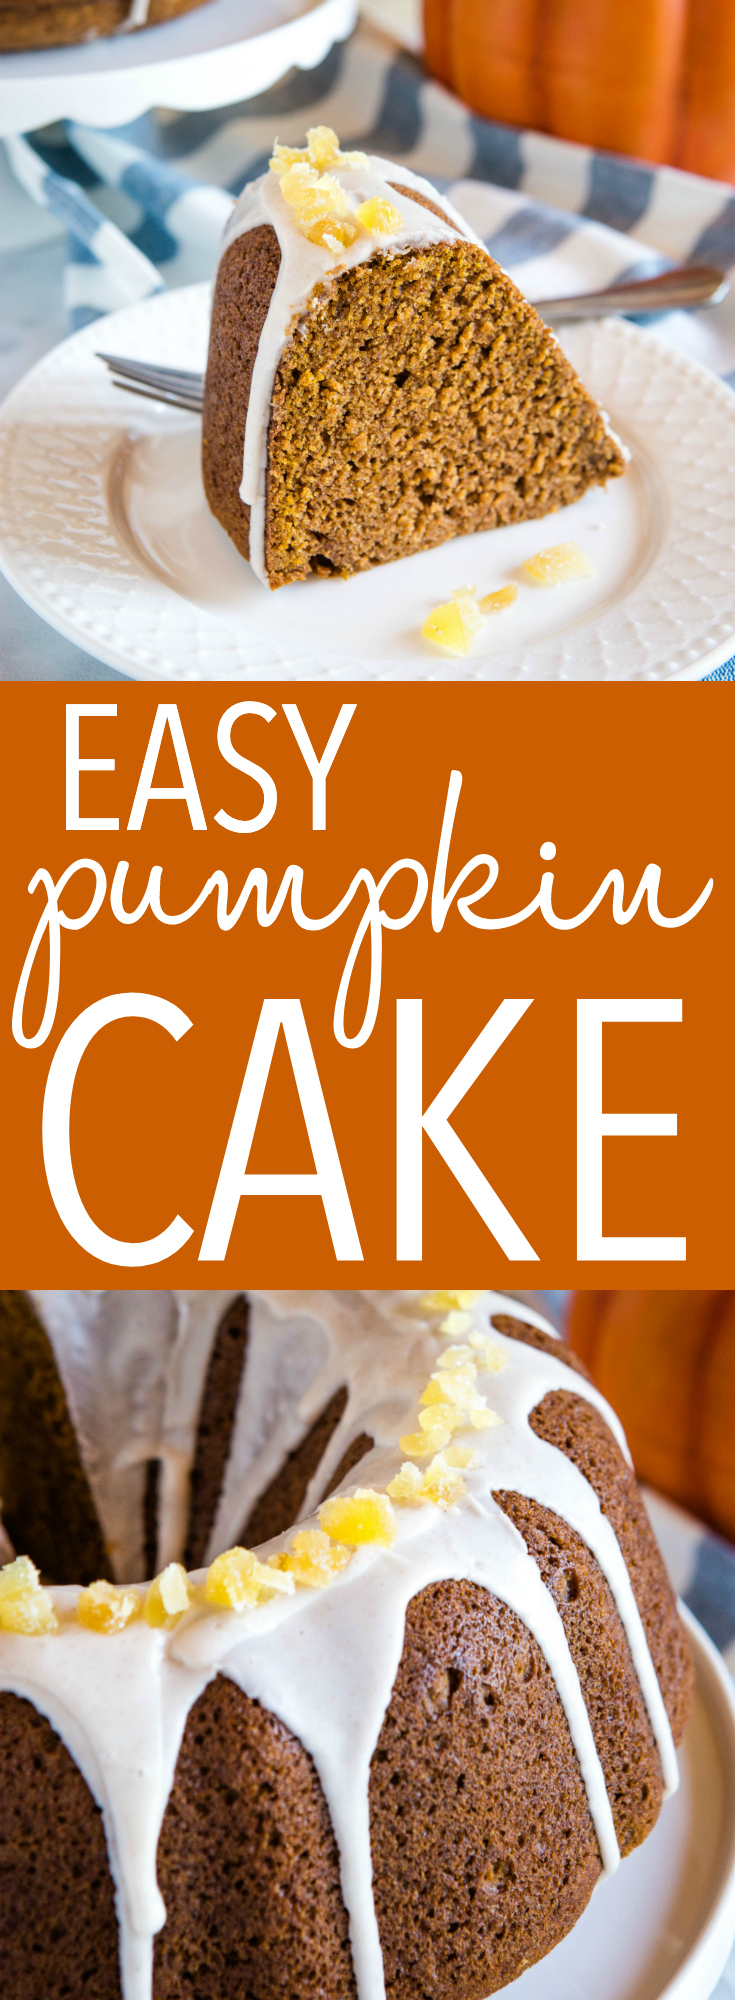 This Easy Pumpkin Bundt Cake is the perfect simple cake for fall! It's so moist and perfectly dense, with the easiest sweet glaze! Recipe from thebusybaker.ca! #cake #pumpkin #bundtcake #easy #recipe #fall #winter #thanksgiving #baking #homemade via @busybakerblog